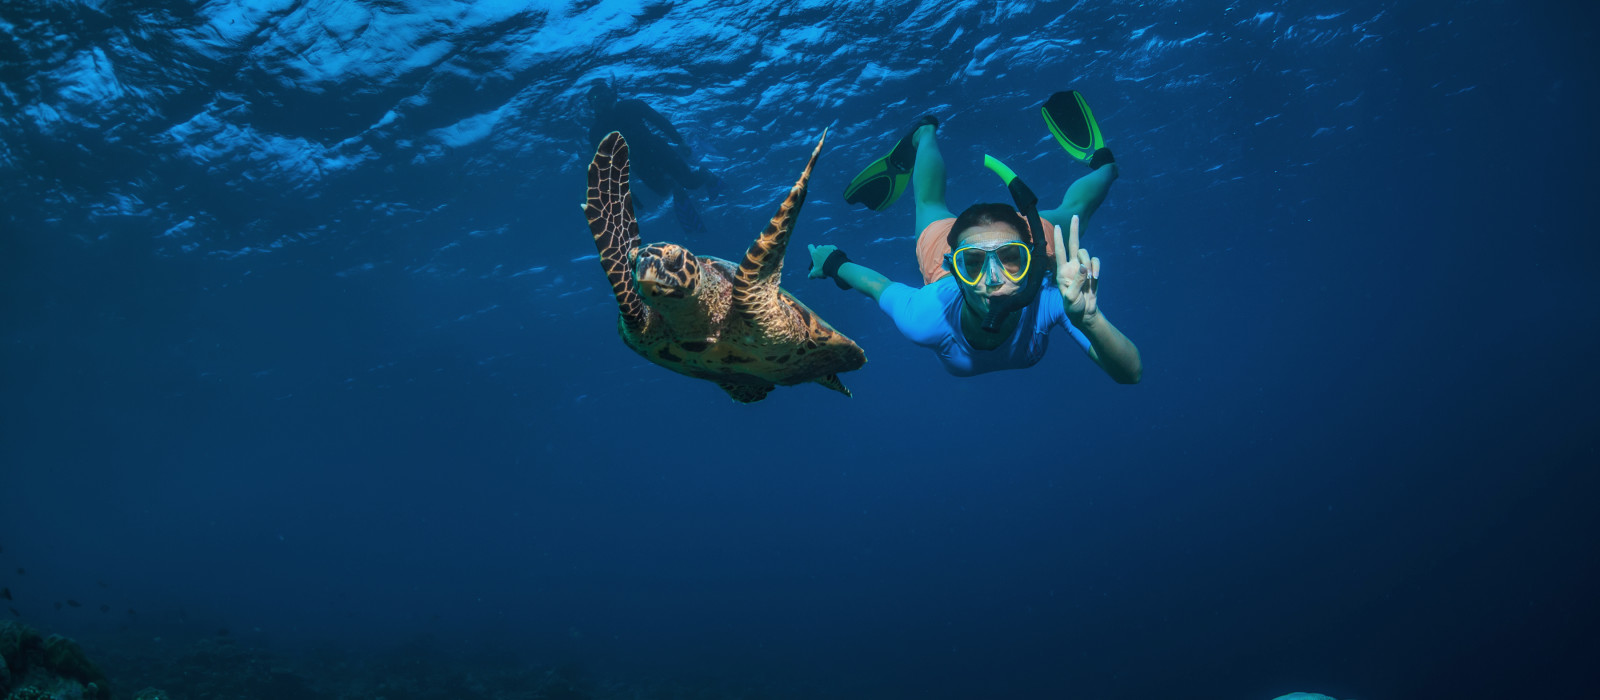 A girl and turtle underwater, Seychelles, Africa